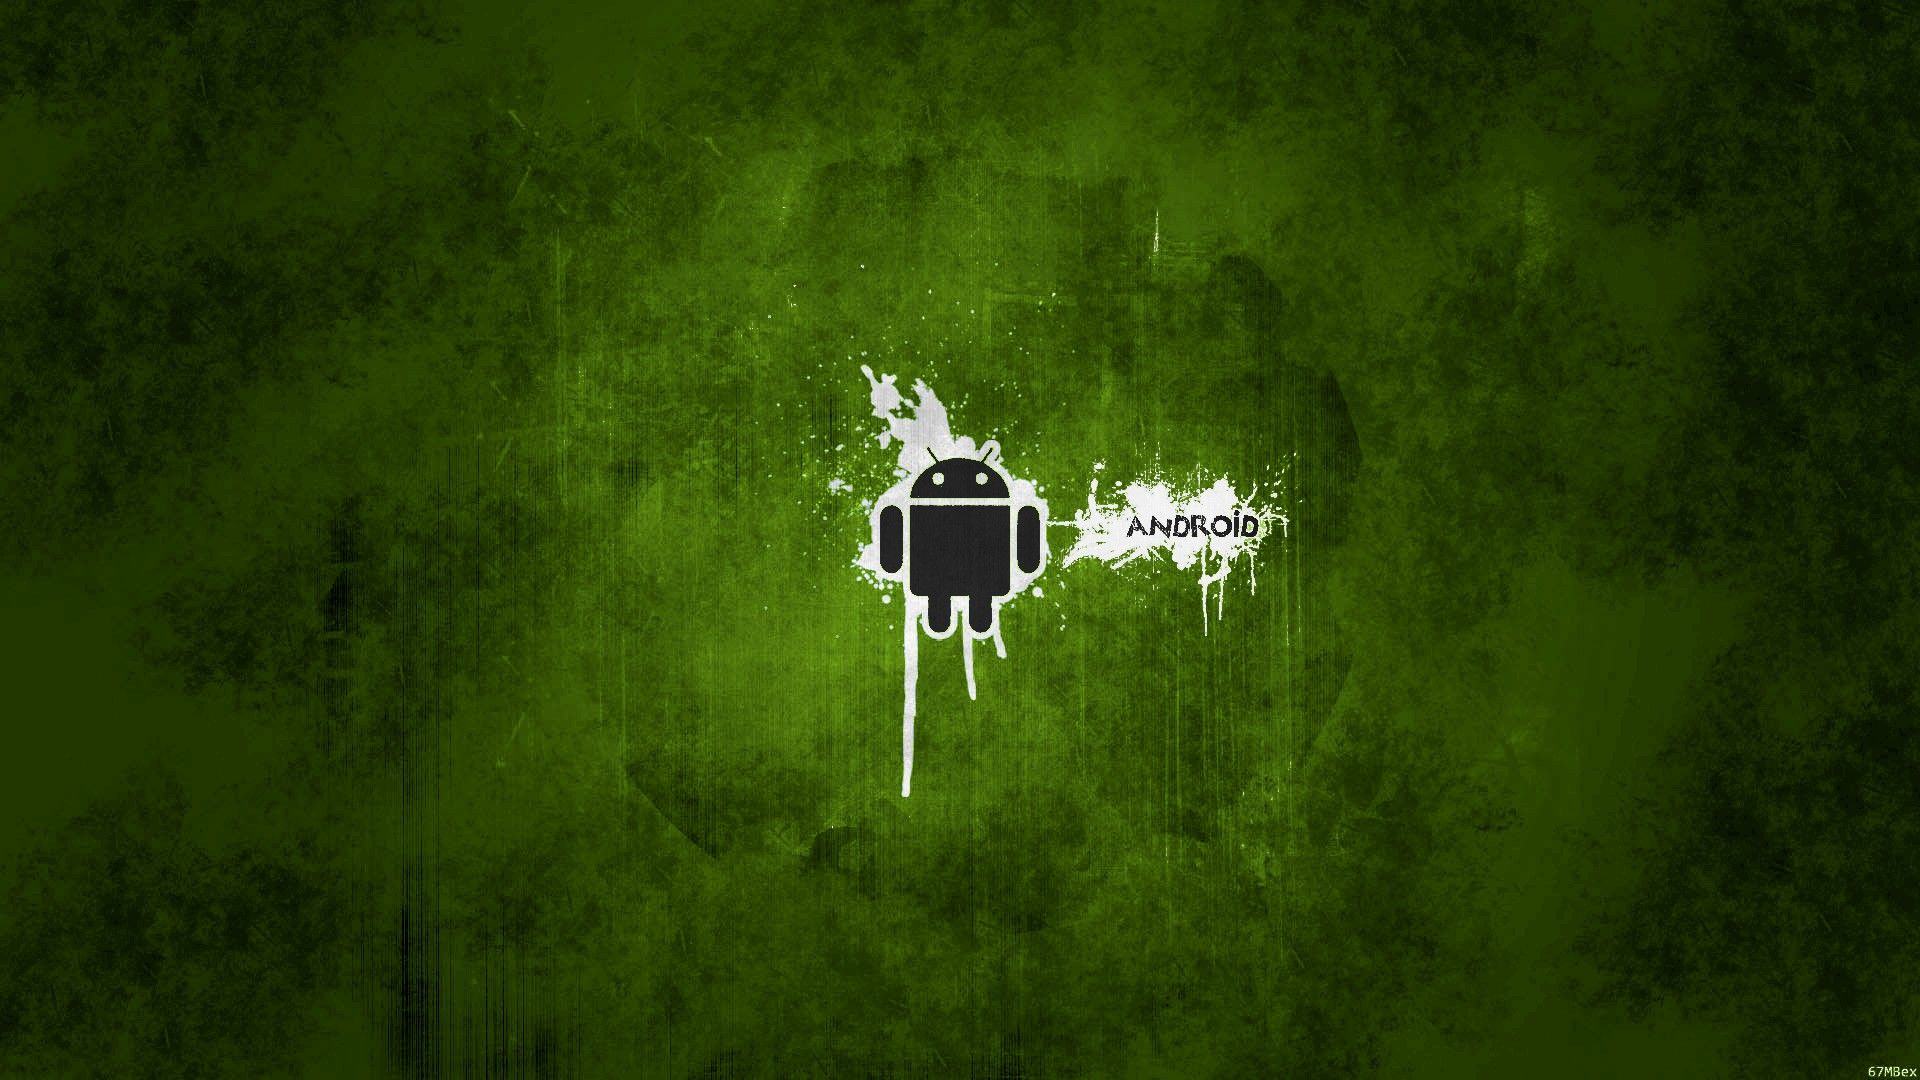 Android Live Wallpapers | Android wallpaper live, Android ...